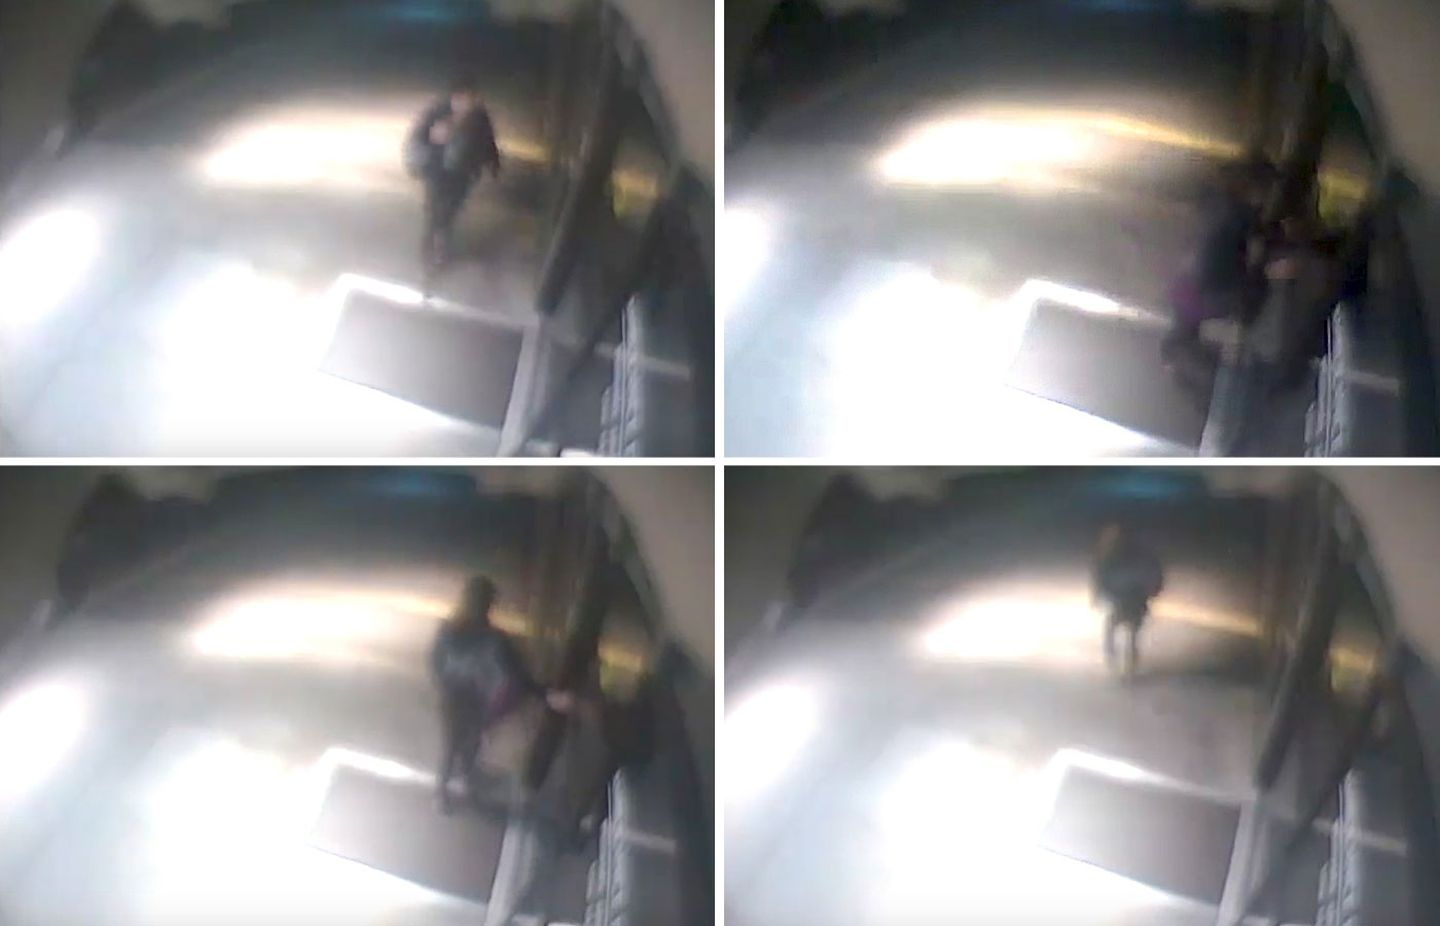 A series of images from surveillance video shows Laura Levis as she approaches a door at Somerville Hospital and finds it locked.